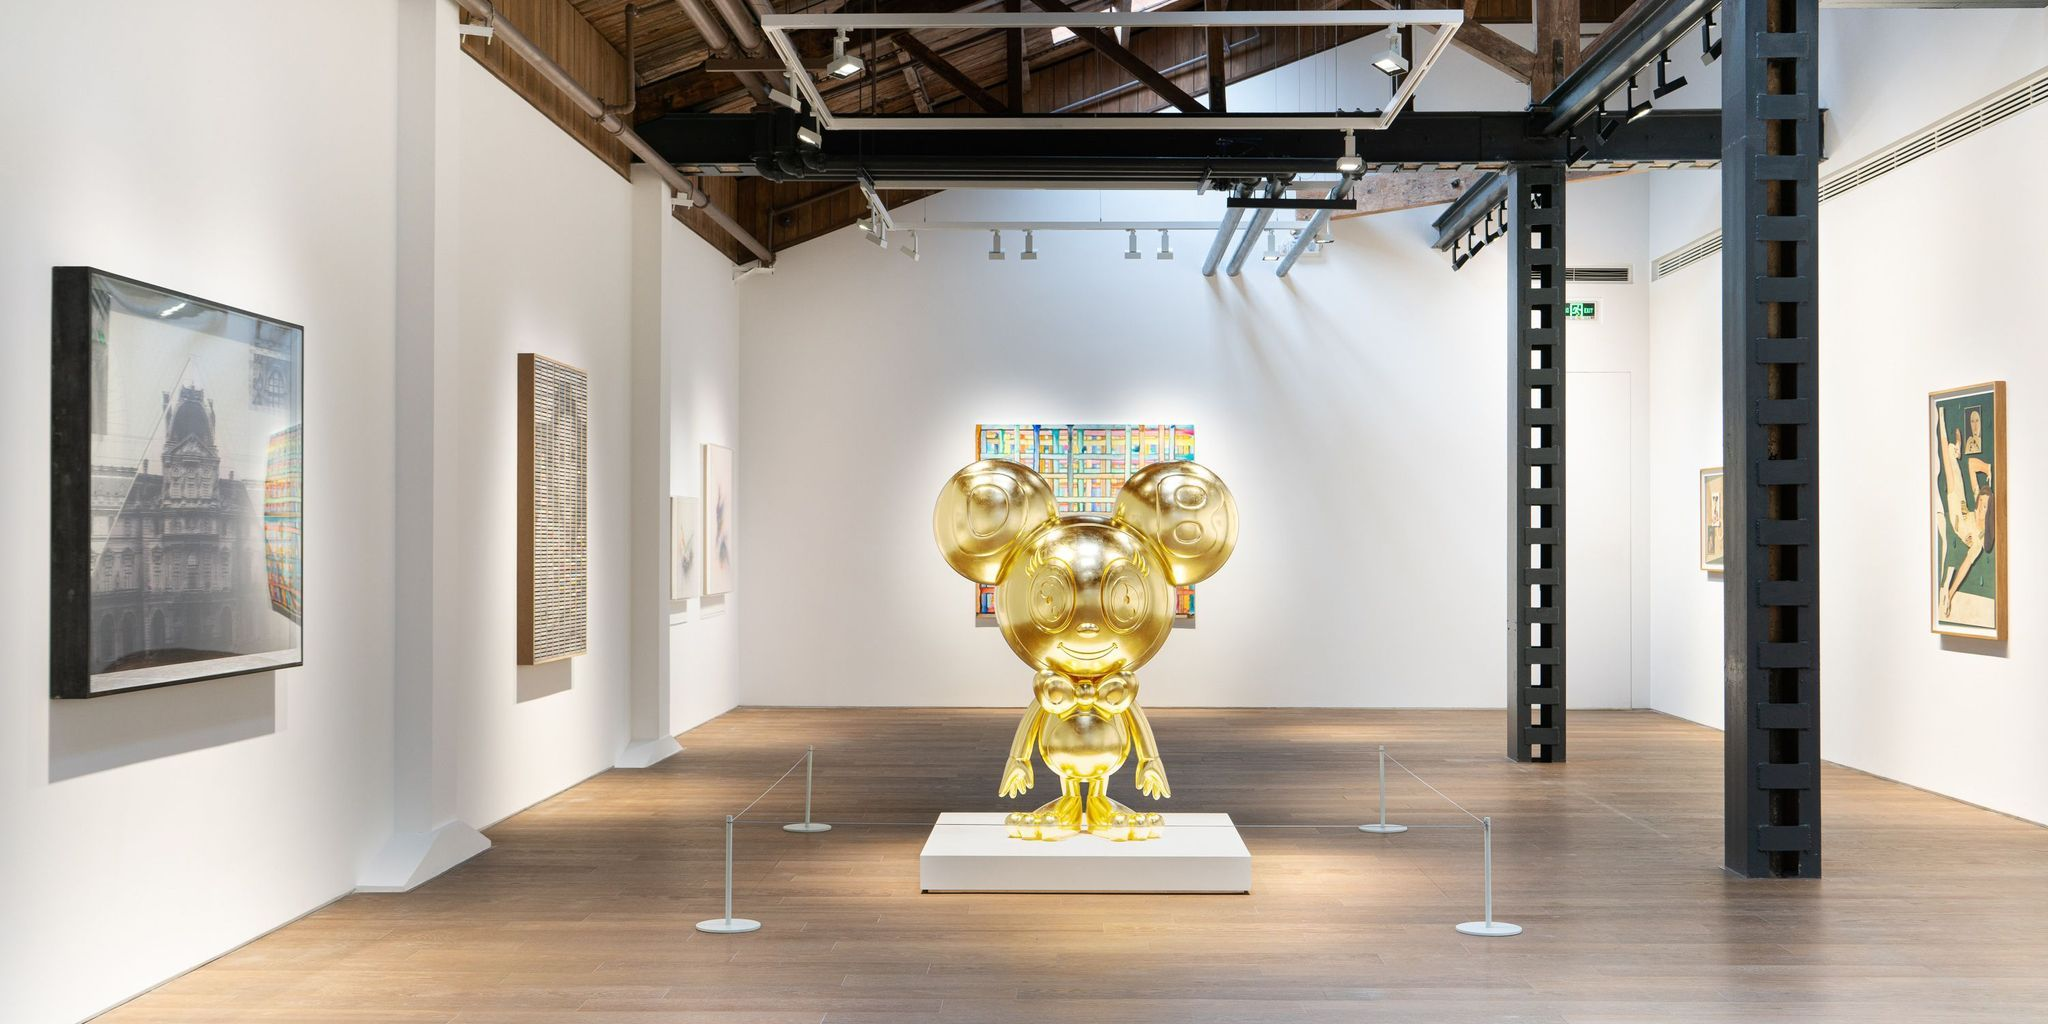 View of Messenger at Perrotin Shanghai, 2020  Photo: Mengqi Bao. ©︎2020 Takashi Murakami/Kaikai Kiki Co., Ltd. All Rights Reserved. Courtesy of Perrotin